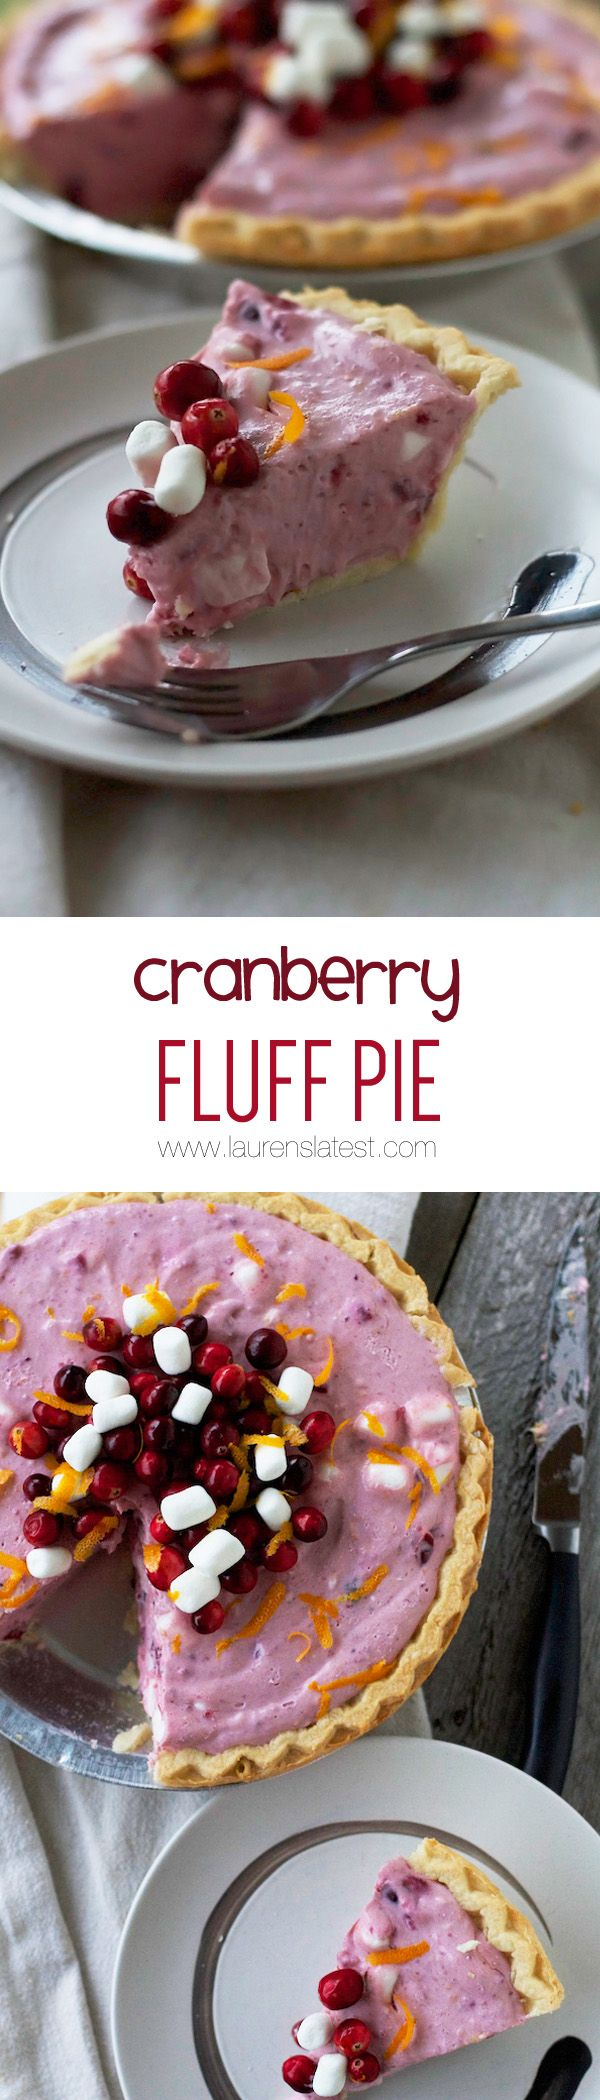 Friends: I give you the Cranberry Fluff Pie. It's another refrigerated, no-bake dessert that takes no time at all to throw together that taste like that jello salad but in pie form! #winning